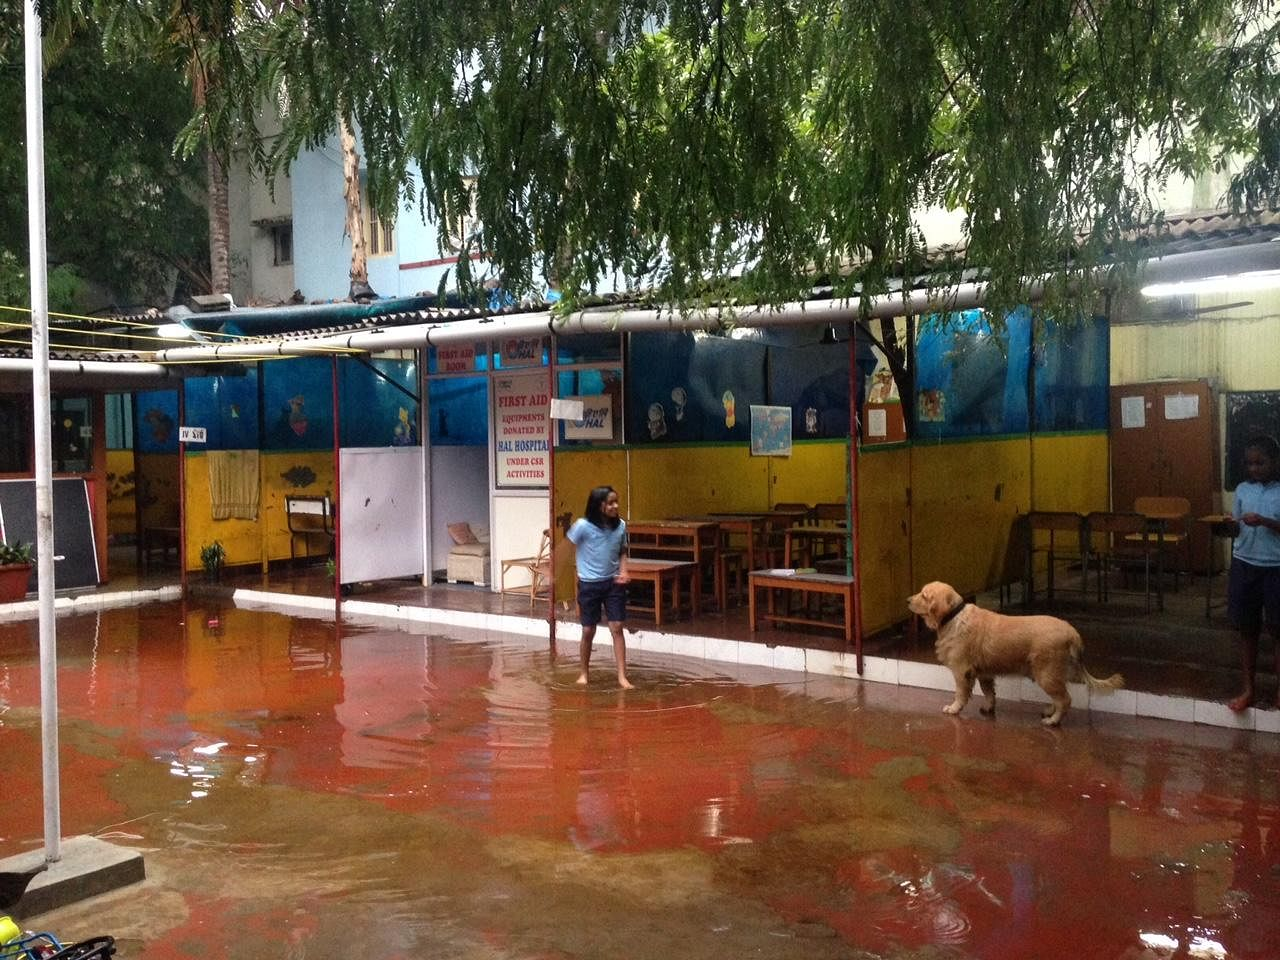 The classroom area stands swamped with an afternoon's rain, while the kids and the in-house pets play ball